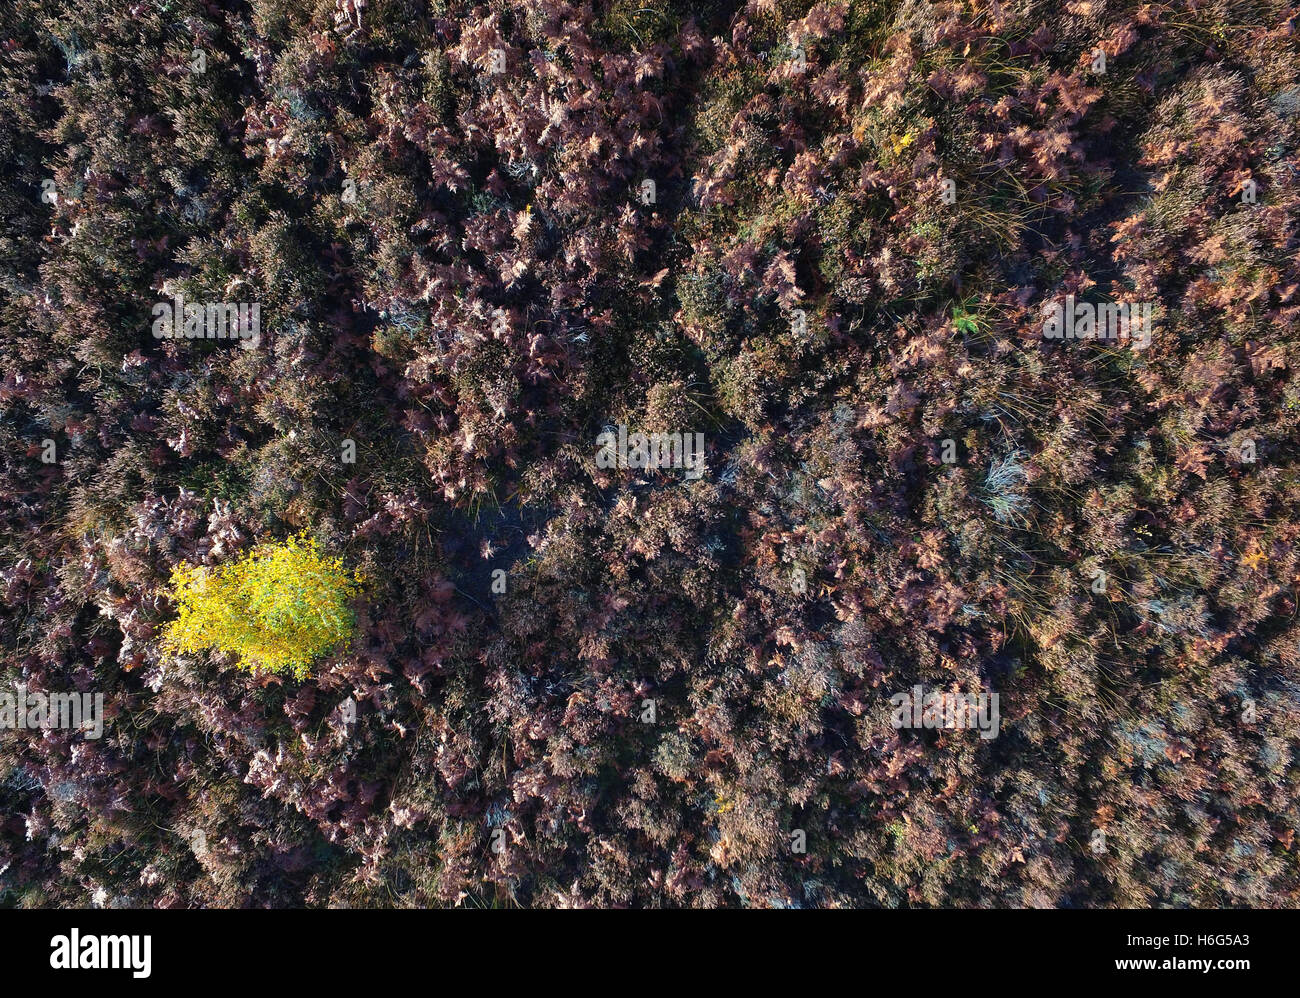 Birds eye view of a small tree in autumn colour surrounded by bracken - Ashdown Forest, East Sussex - Stock Image